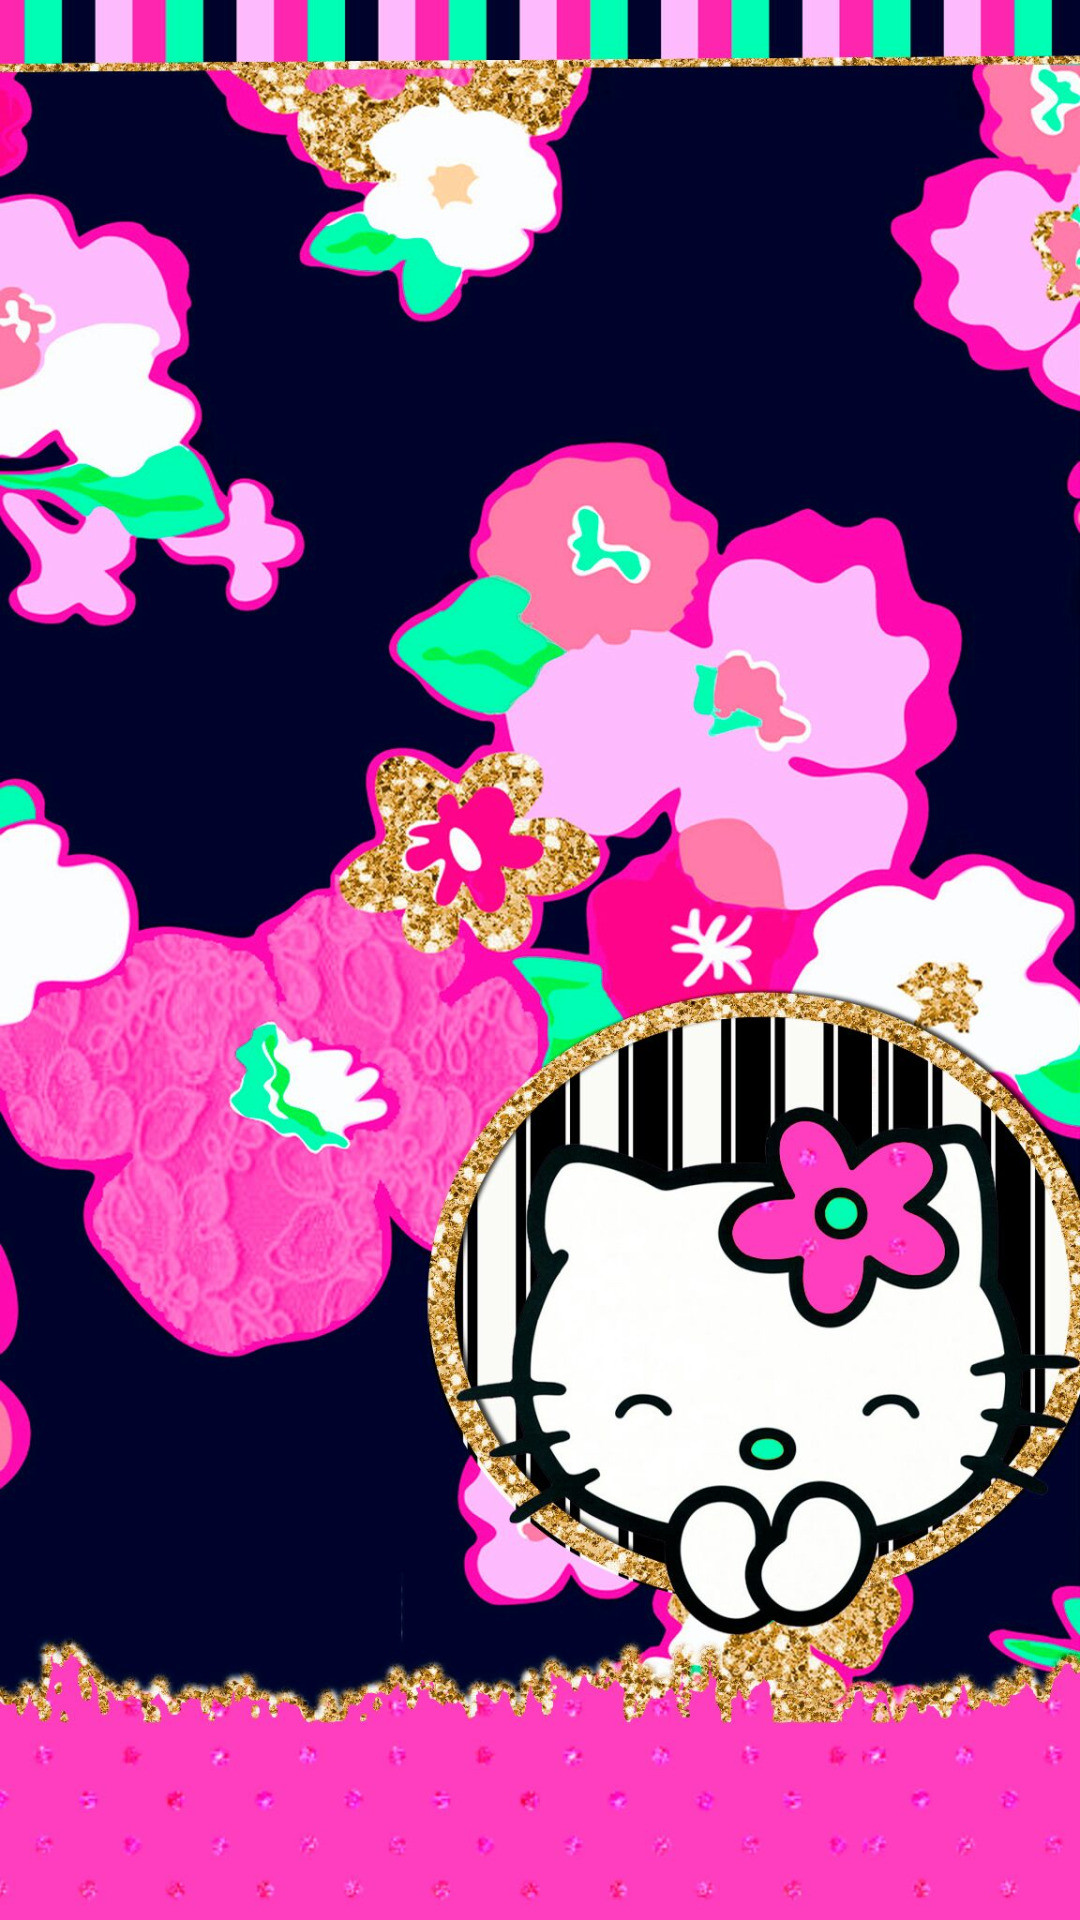 Fall Leaves Live Wallpaper Iphone Hello Kitty Fall Wallpaper 183 ① Wallpapertag